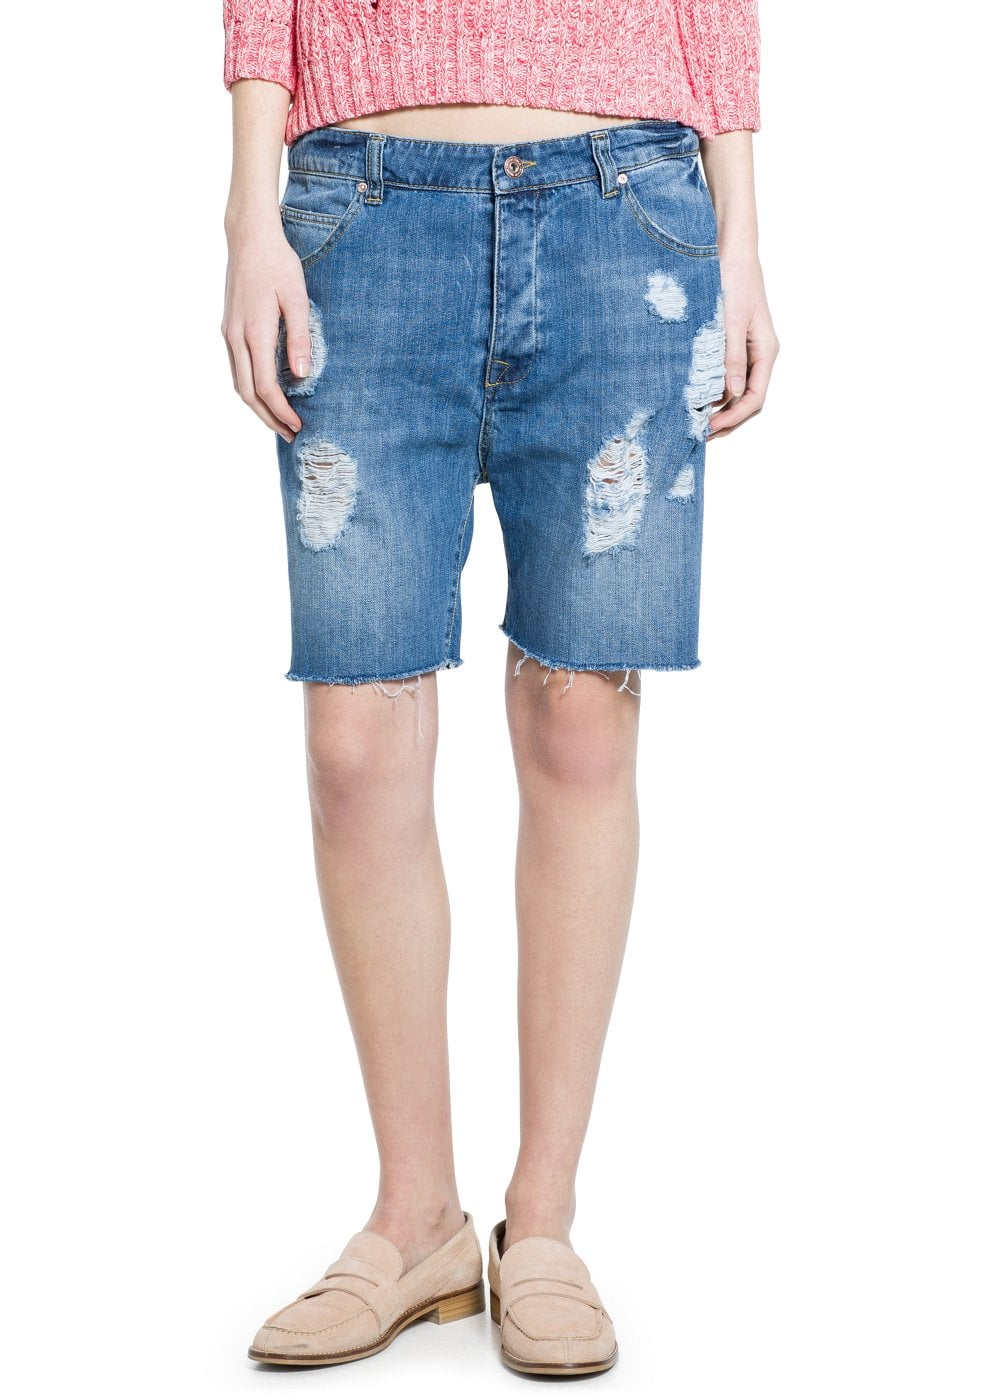 Bermudas boyfriend denim